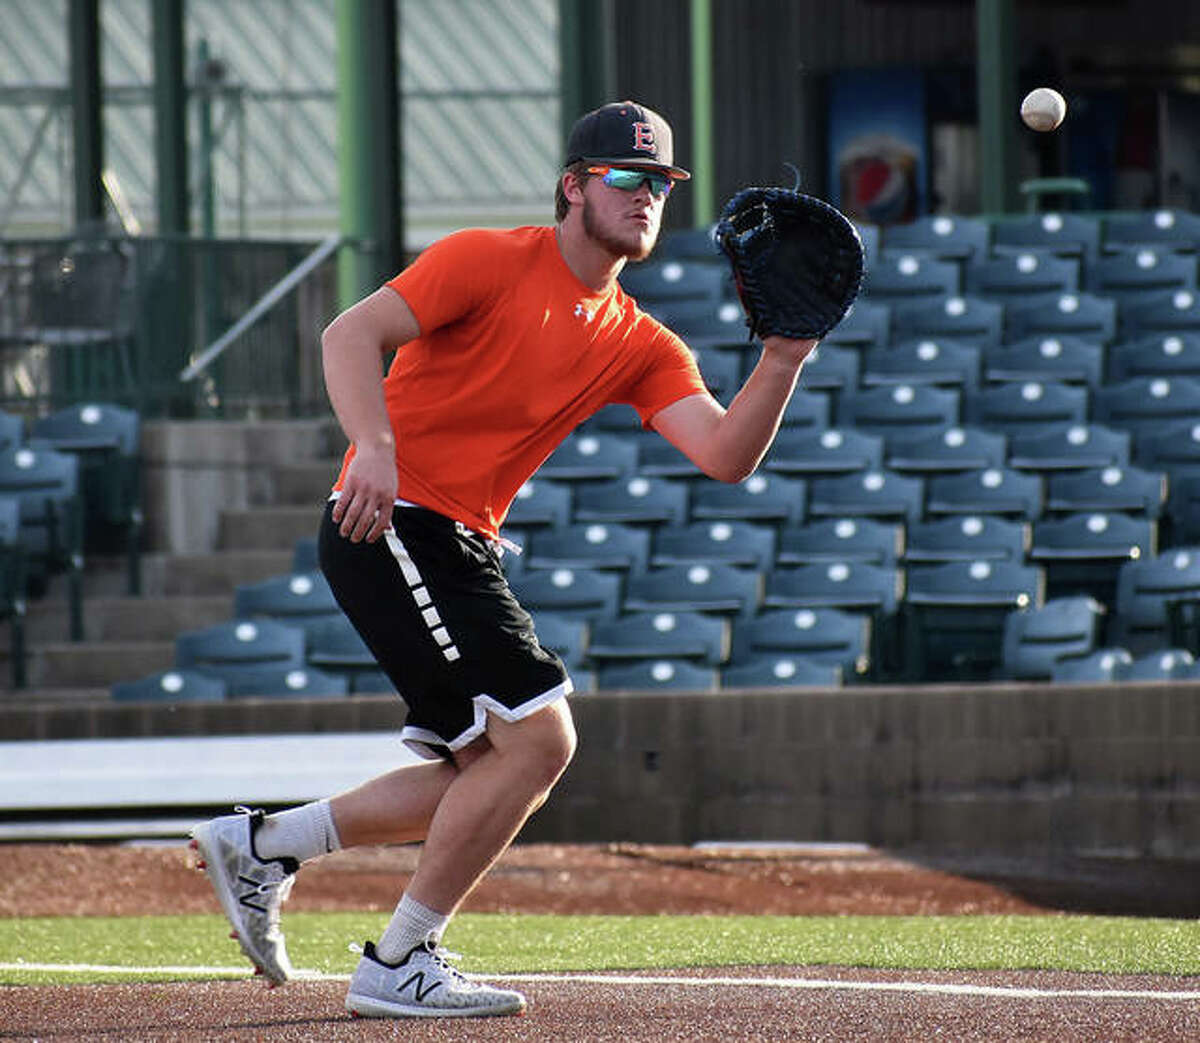 Edwardsville's Gavin Reames fields a ground ball at first base during an infield drill at Tuesday's practice inside GCS Stadium in Sauget.